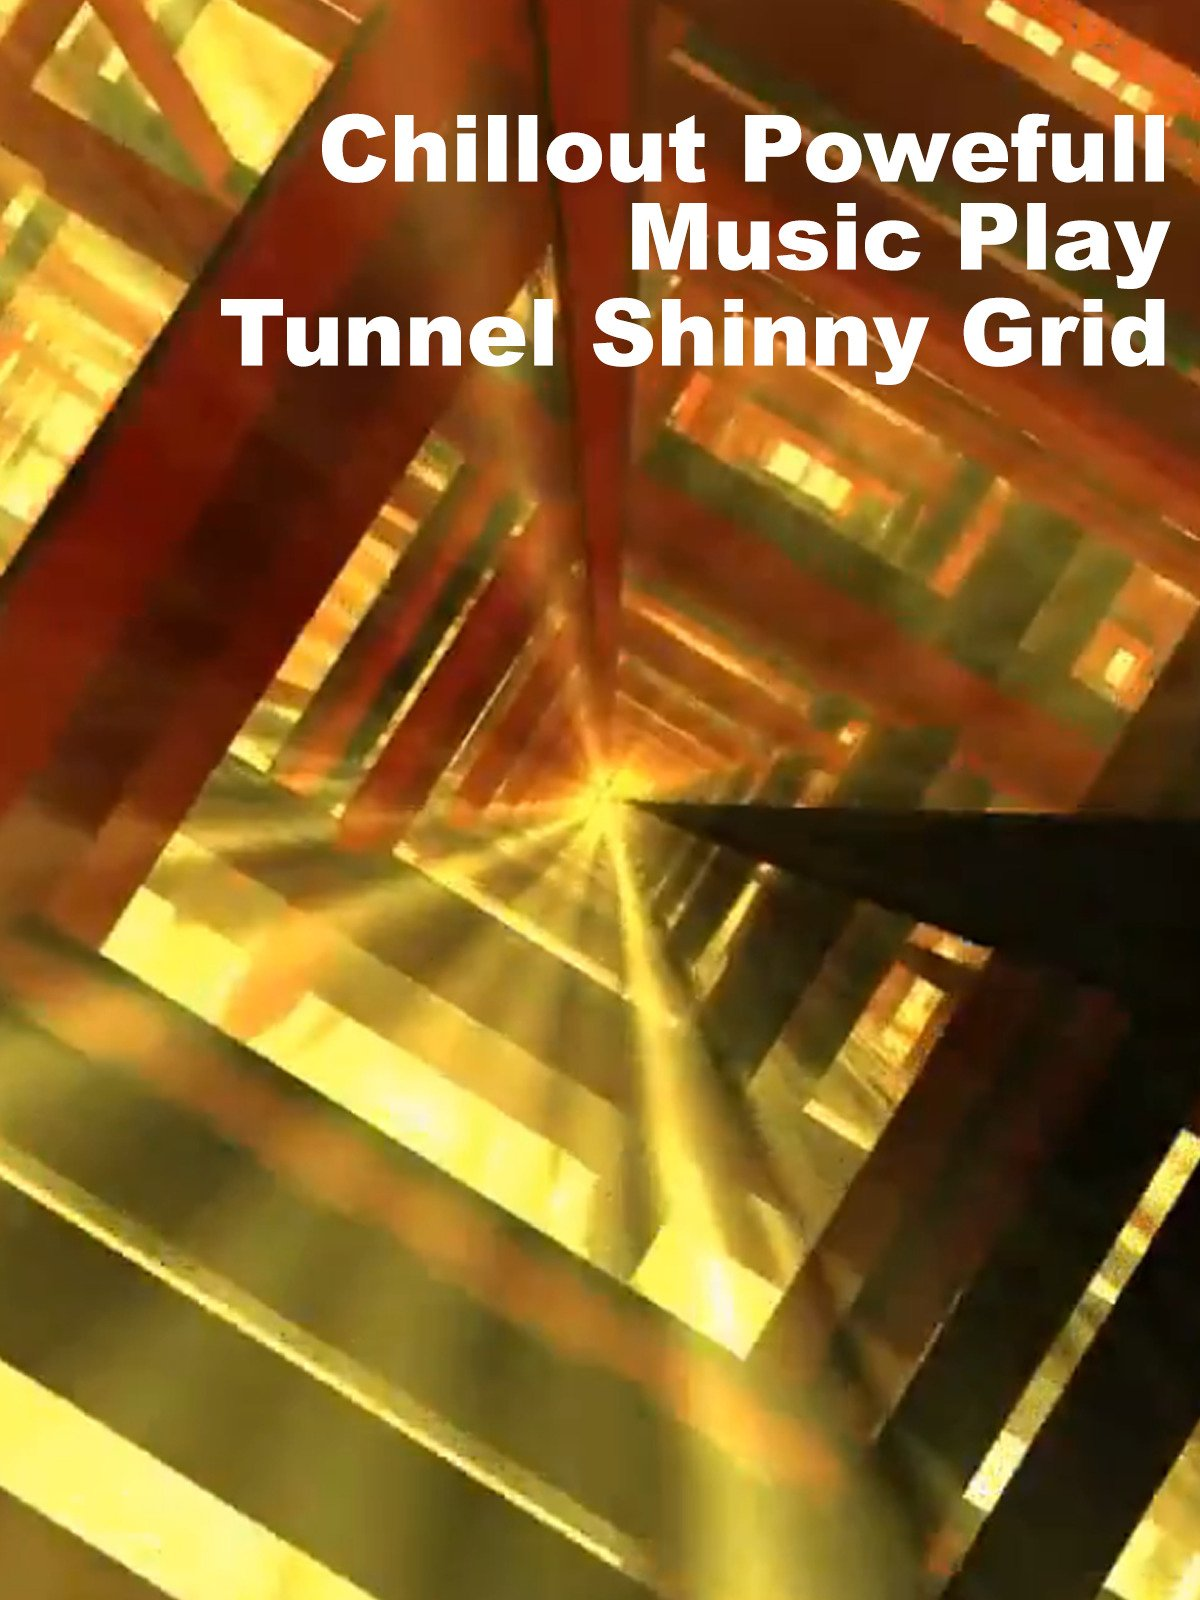 Chillout Powerfull Music Play Tunnel Shinny Grid